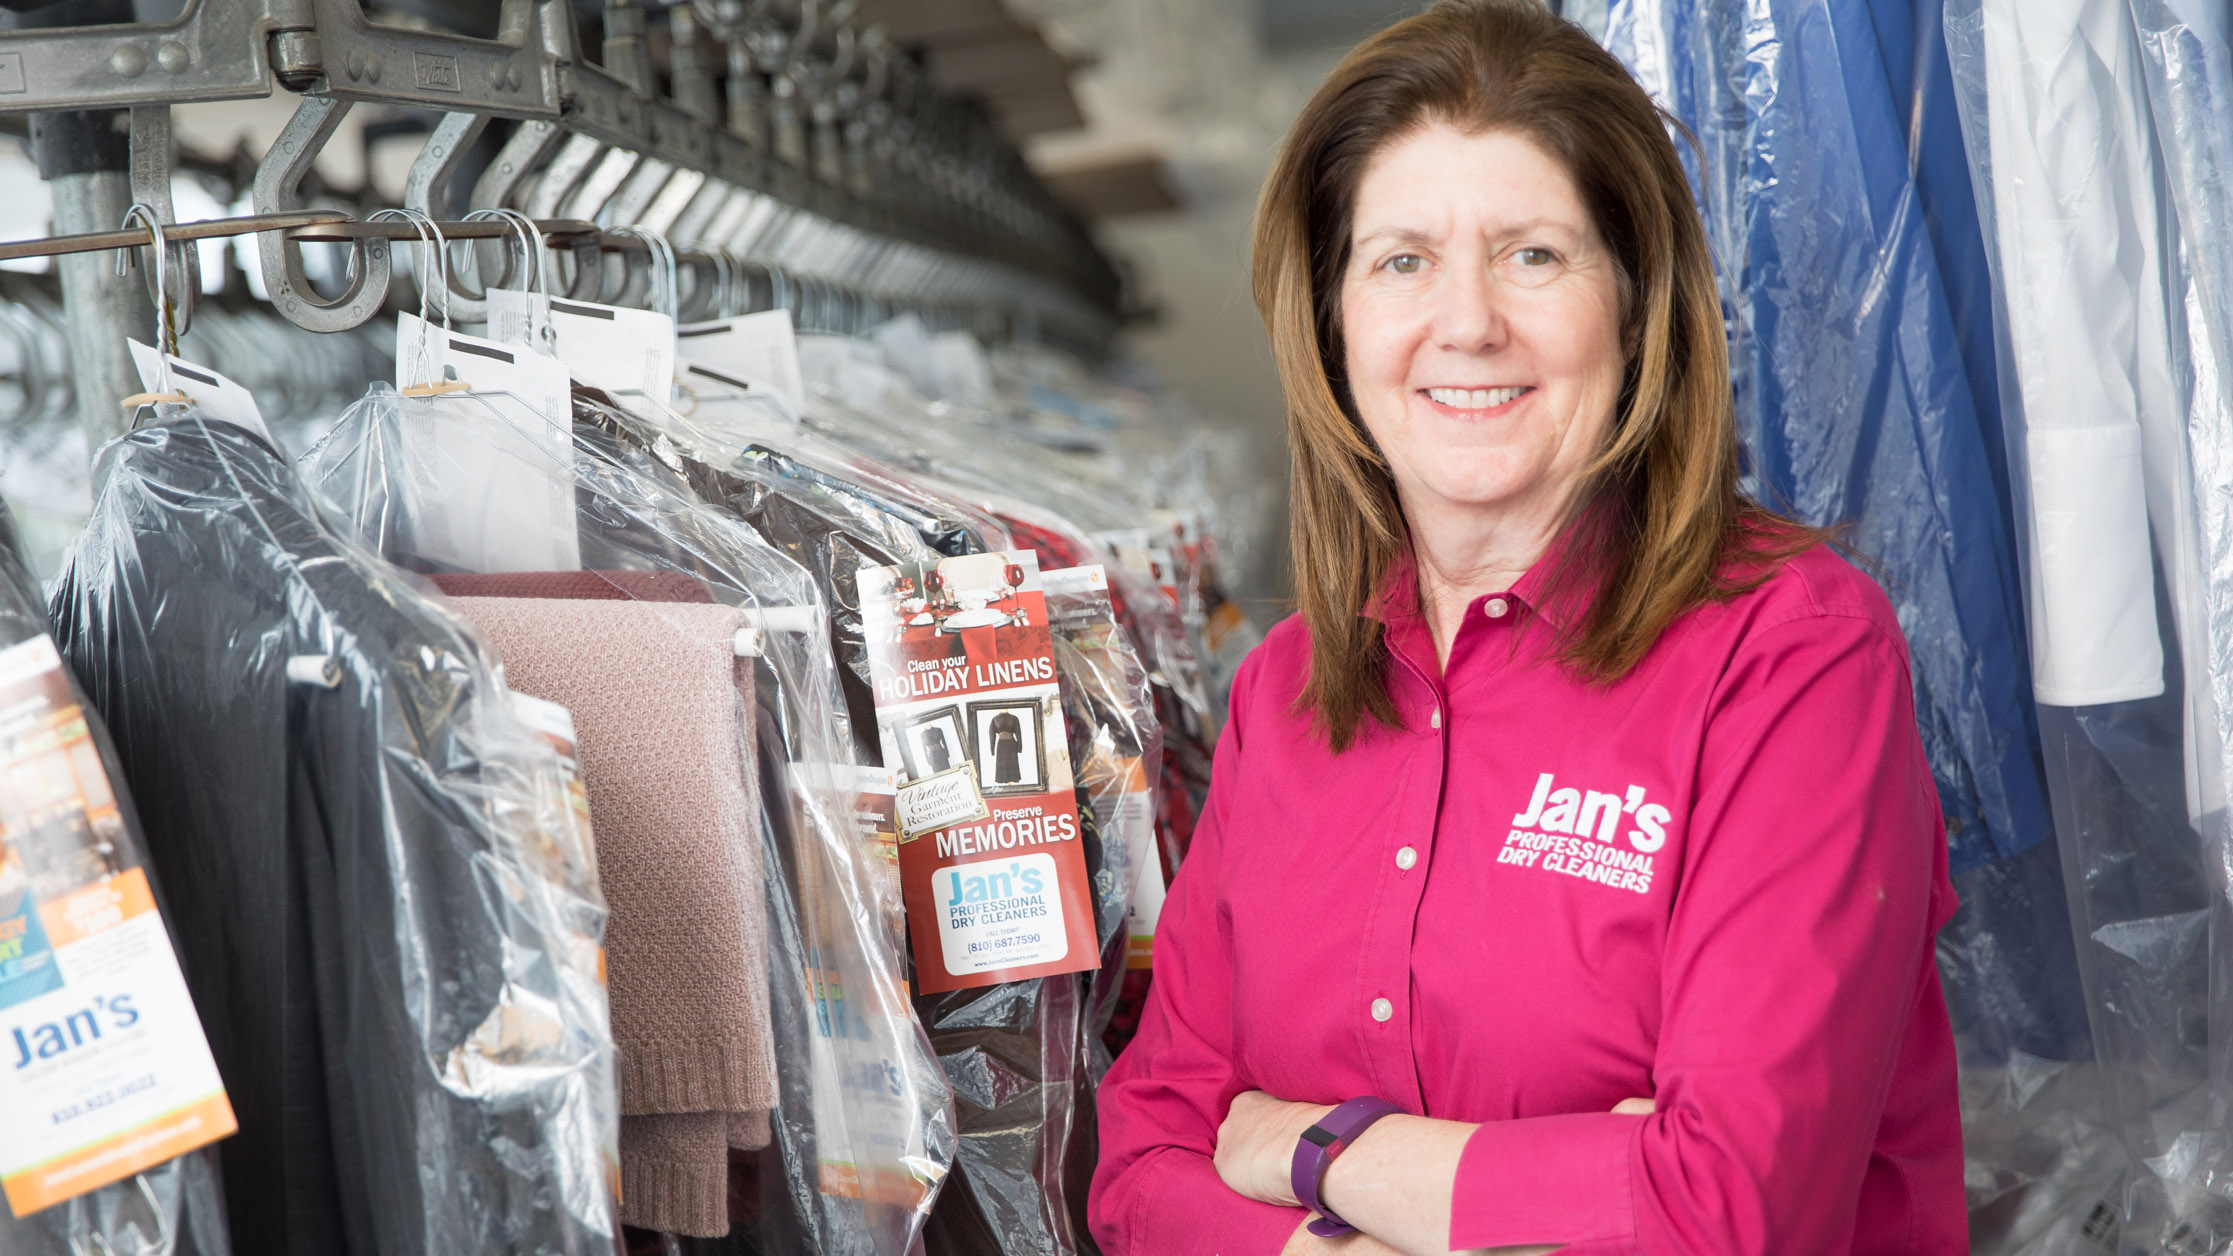 Jan Barlow, owner of Jan's Professional Dry Cleaning, Clio, MI